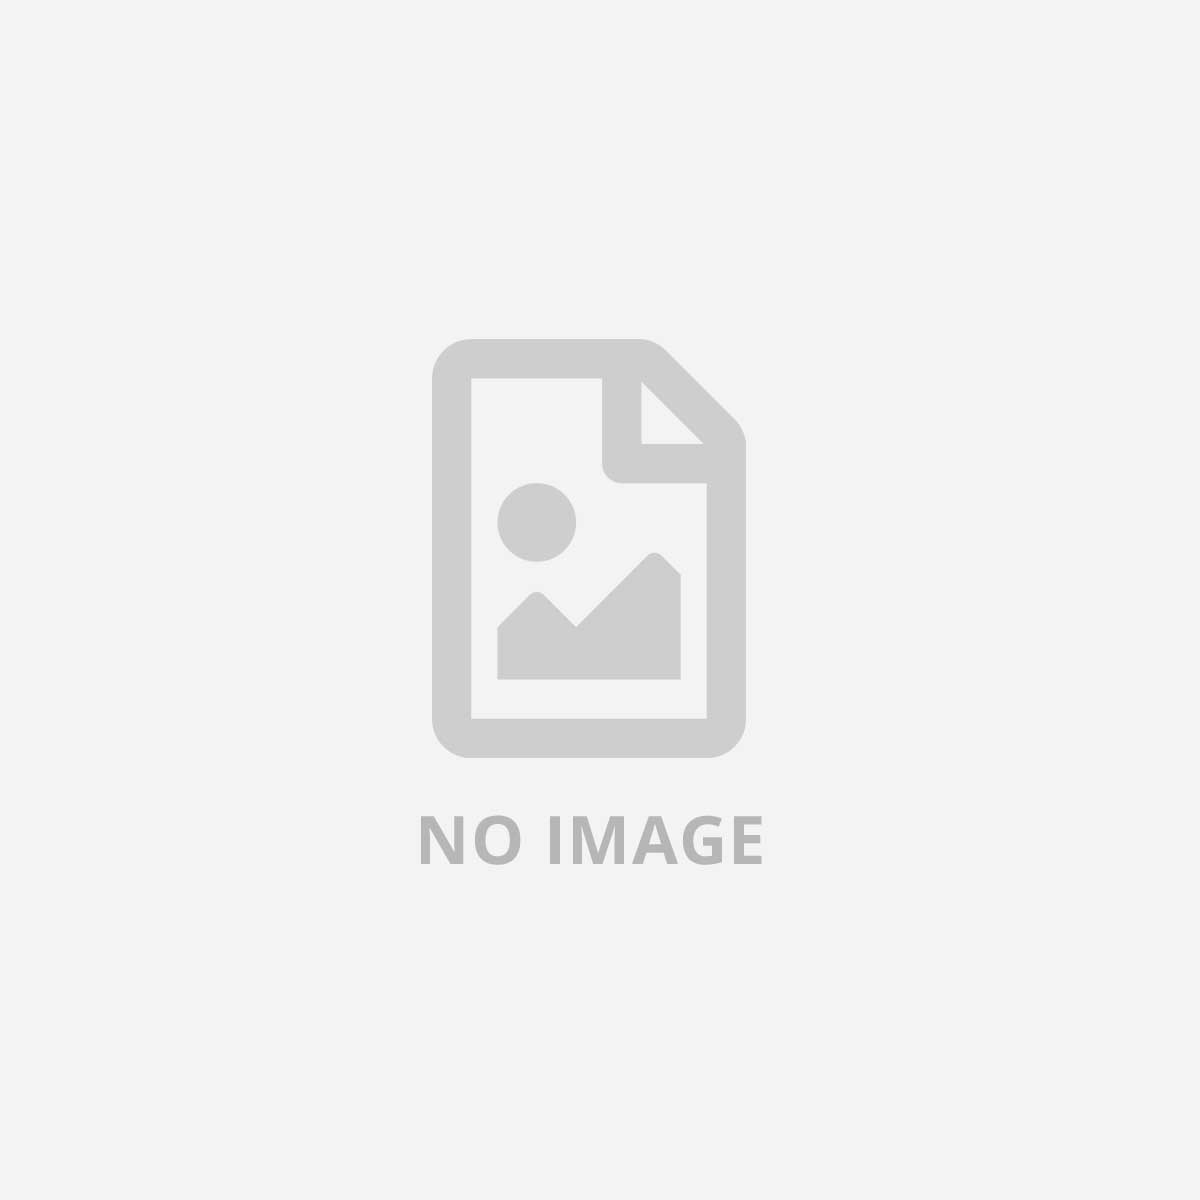 KOCH MEDIA RETRO-BIT SEGA MD 8BUTTON USB BLACK